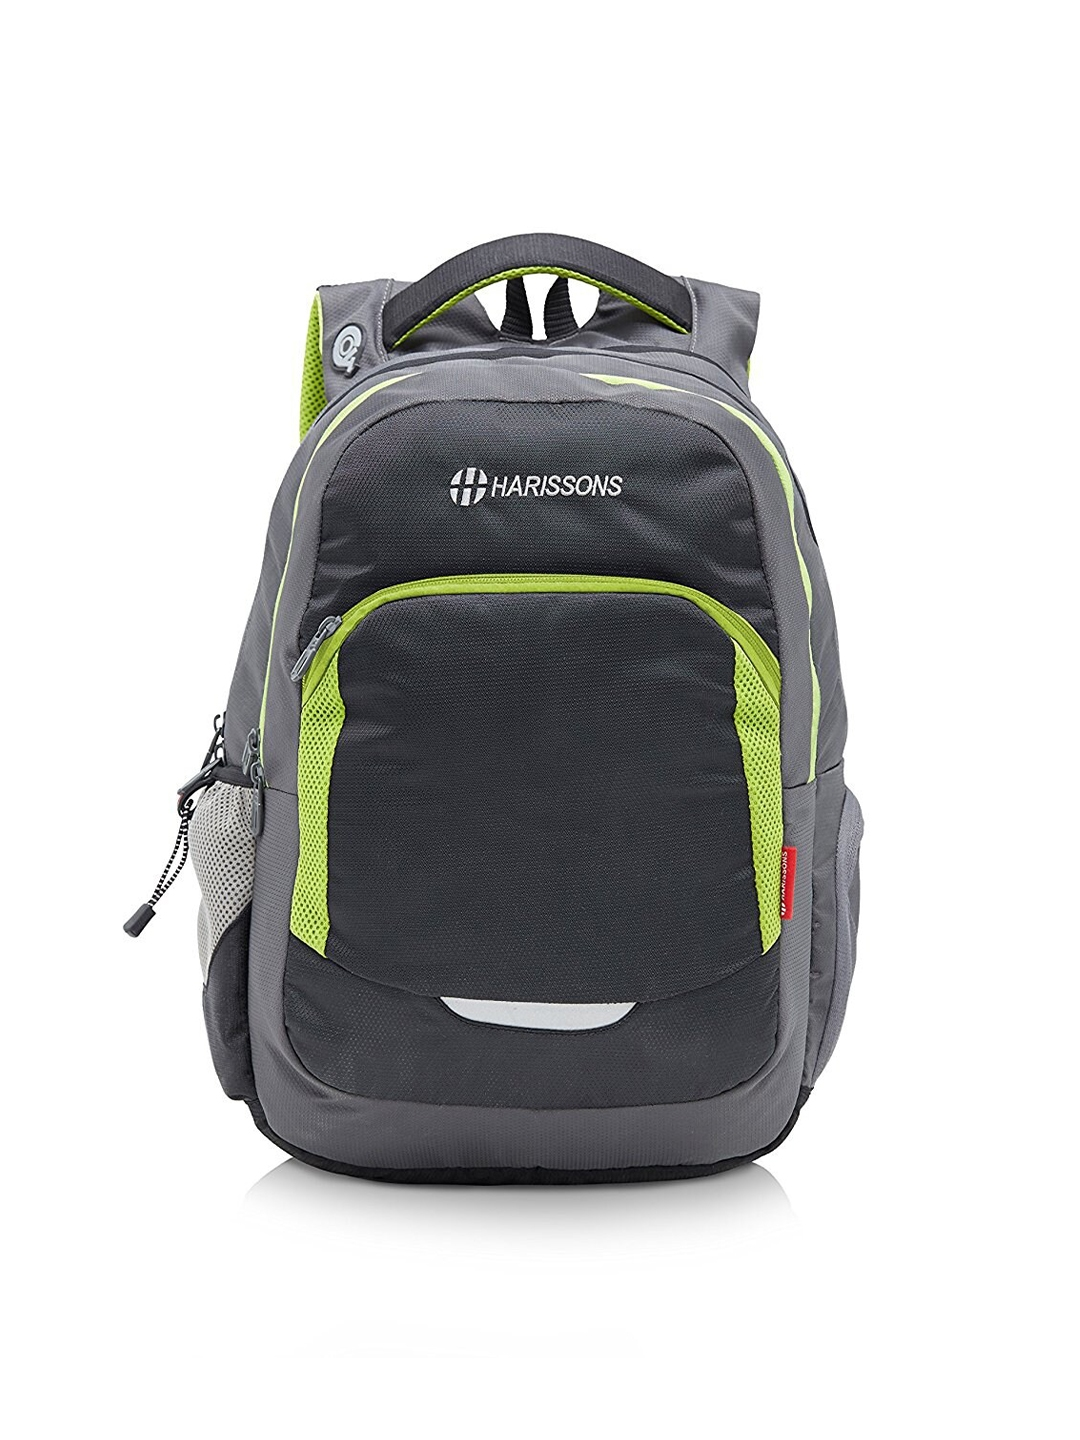 Harissons Black   Green 15 Inch Colourblocked Laptop Backpack